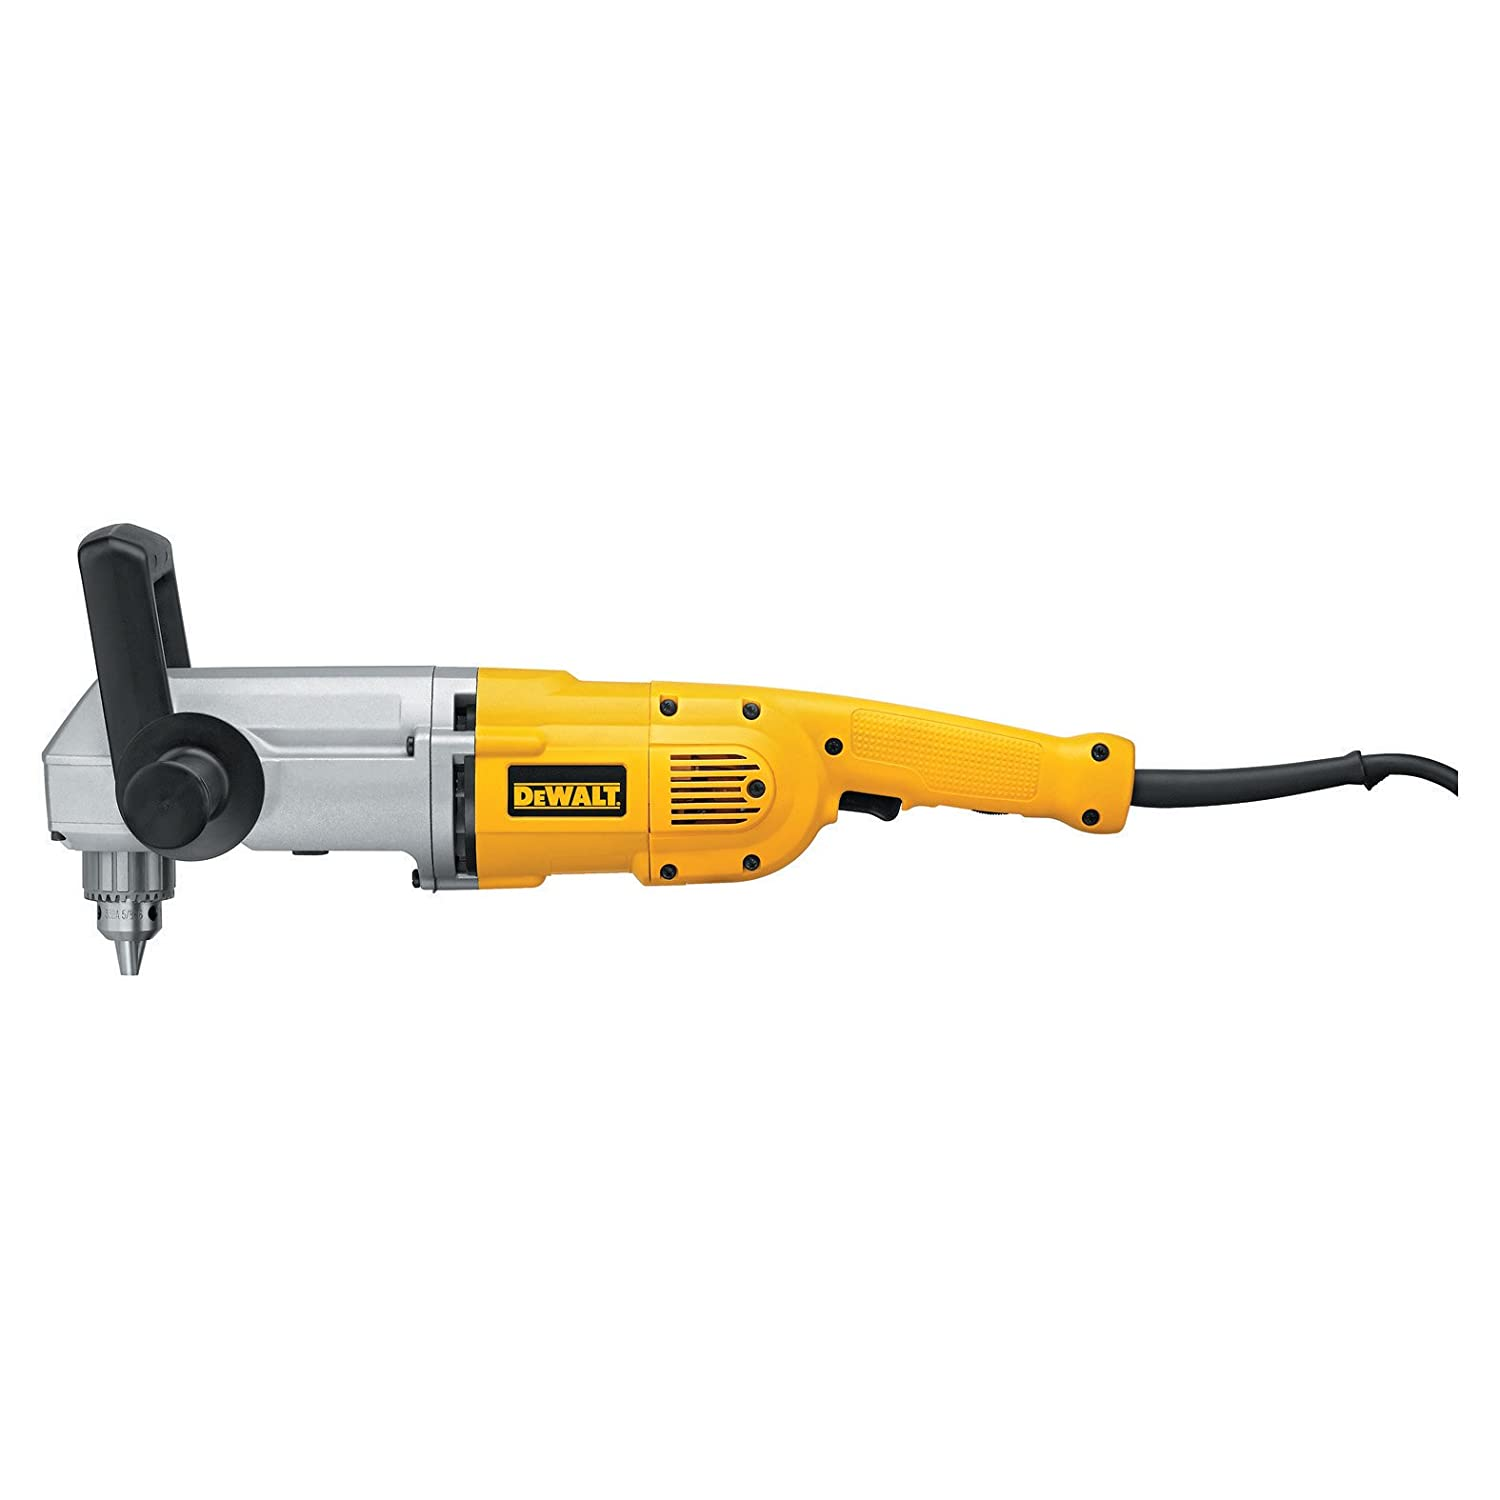 61McQeJVwGL._SL1500_ dewalt dw124 11 5 amp 1 2 inch right angle drill power right  at cos-gaming.co